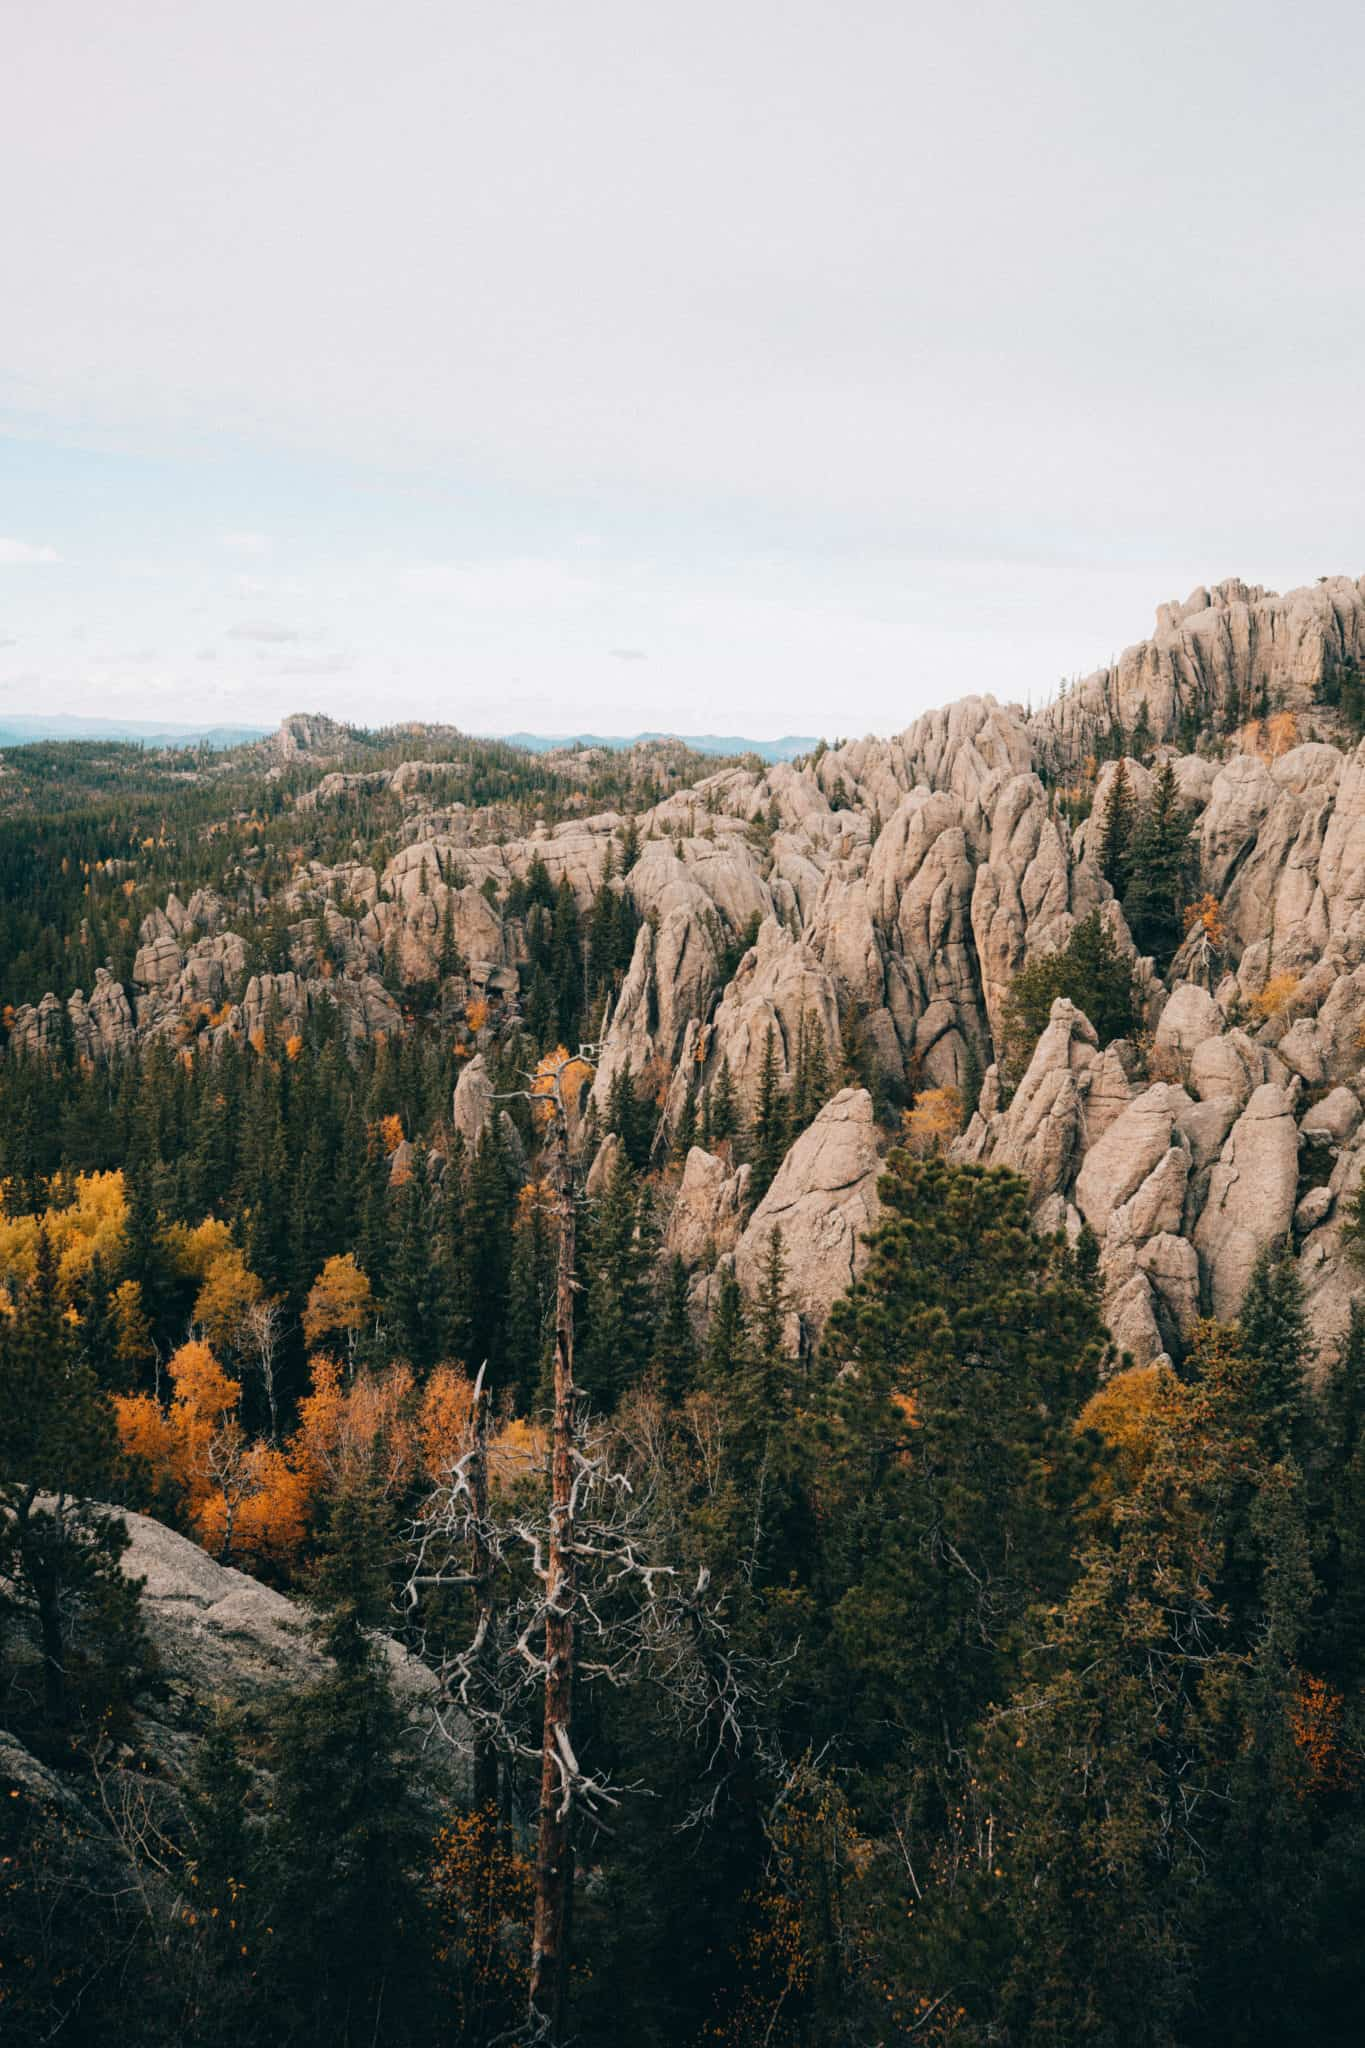 Granite views from Black Elk Peak, South Dakota